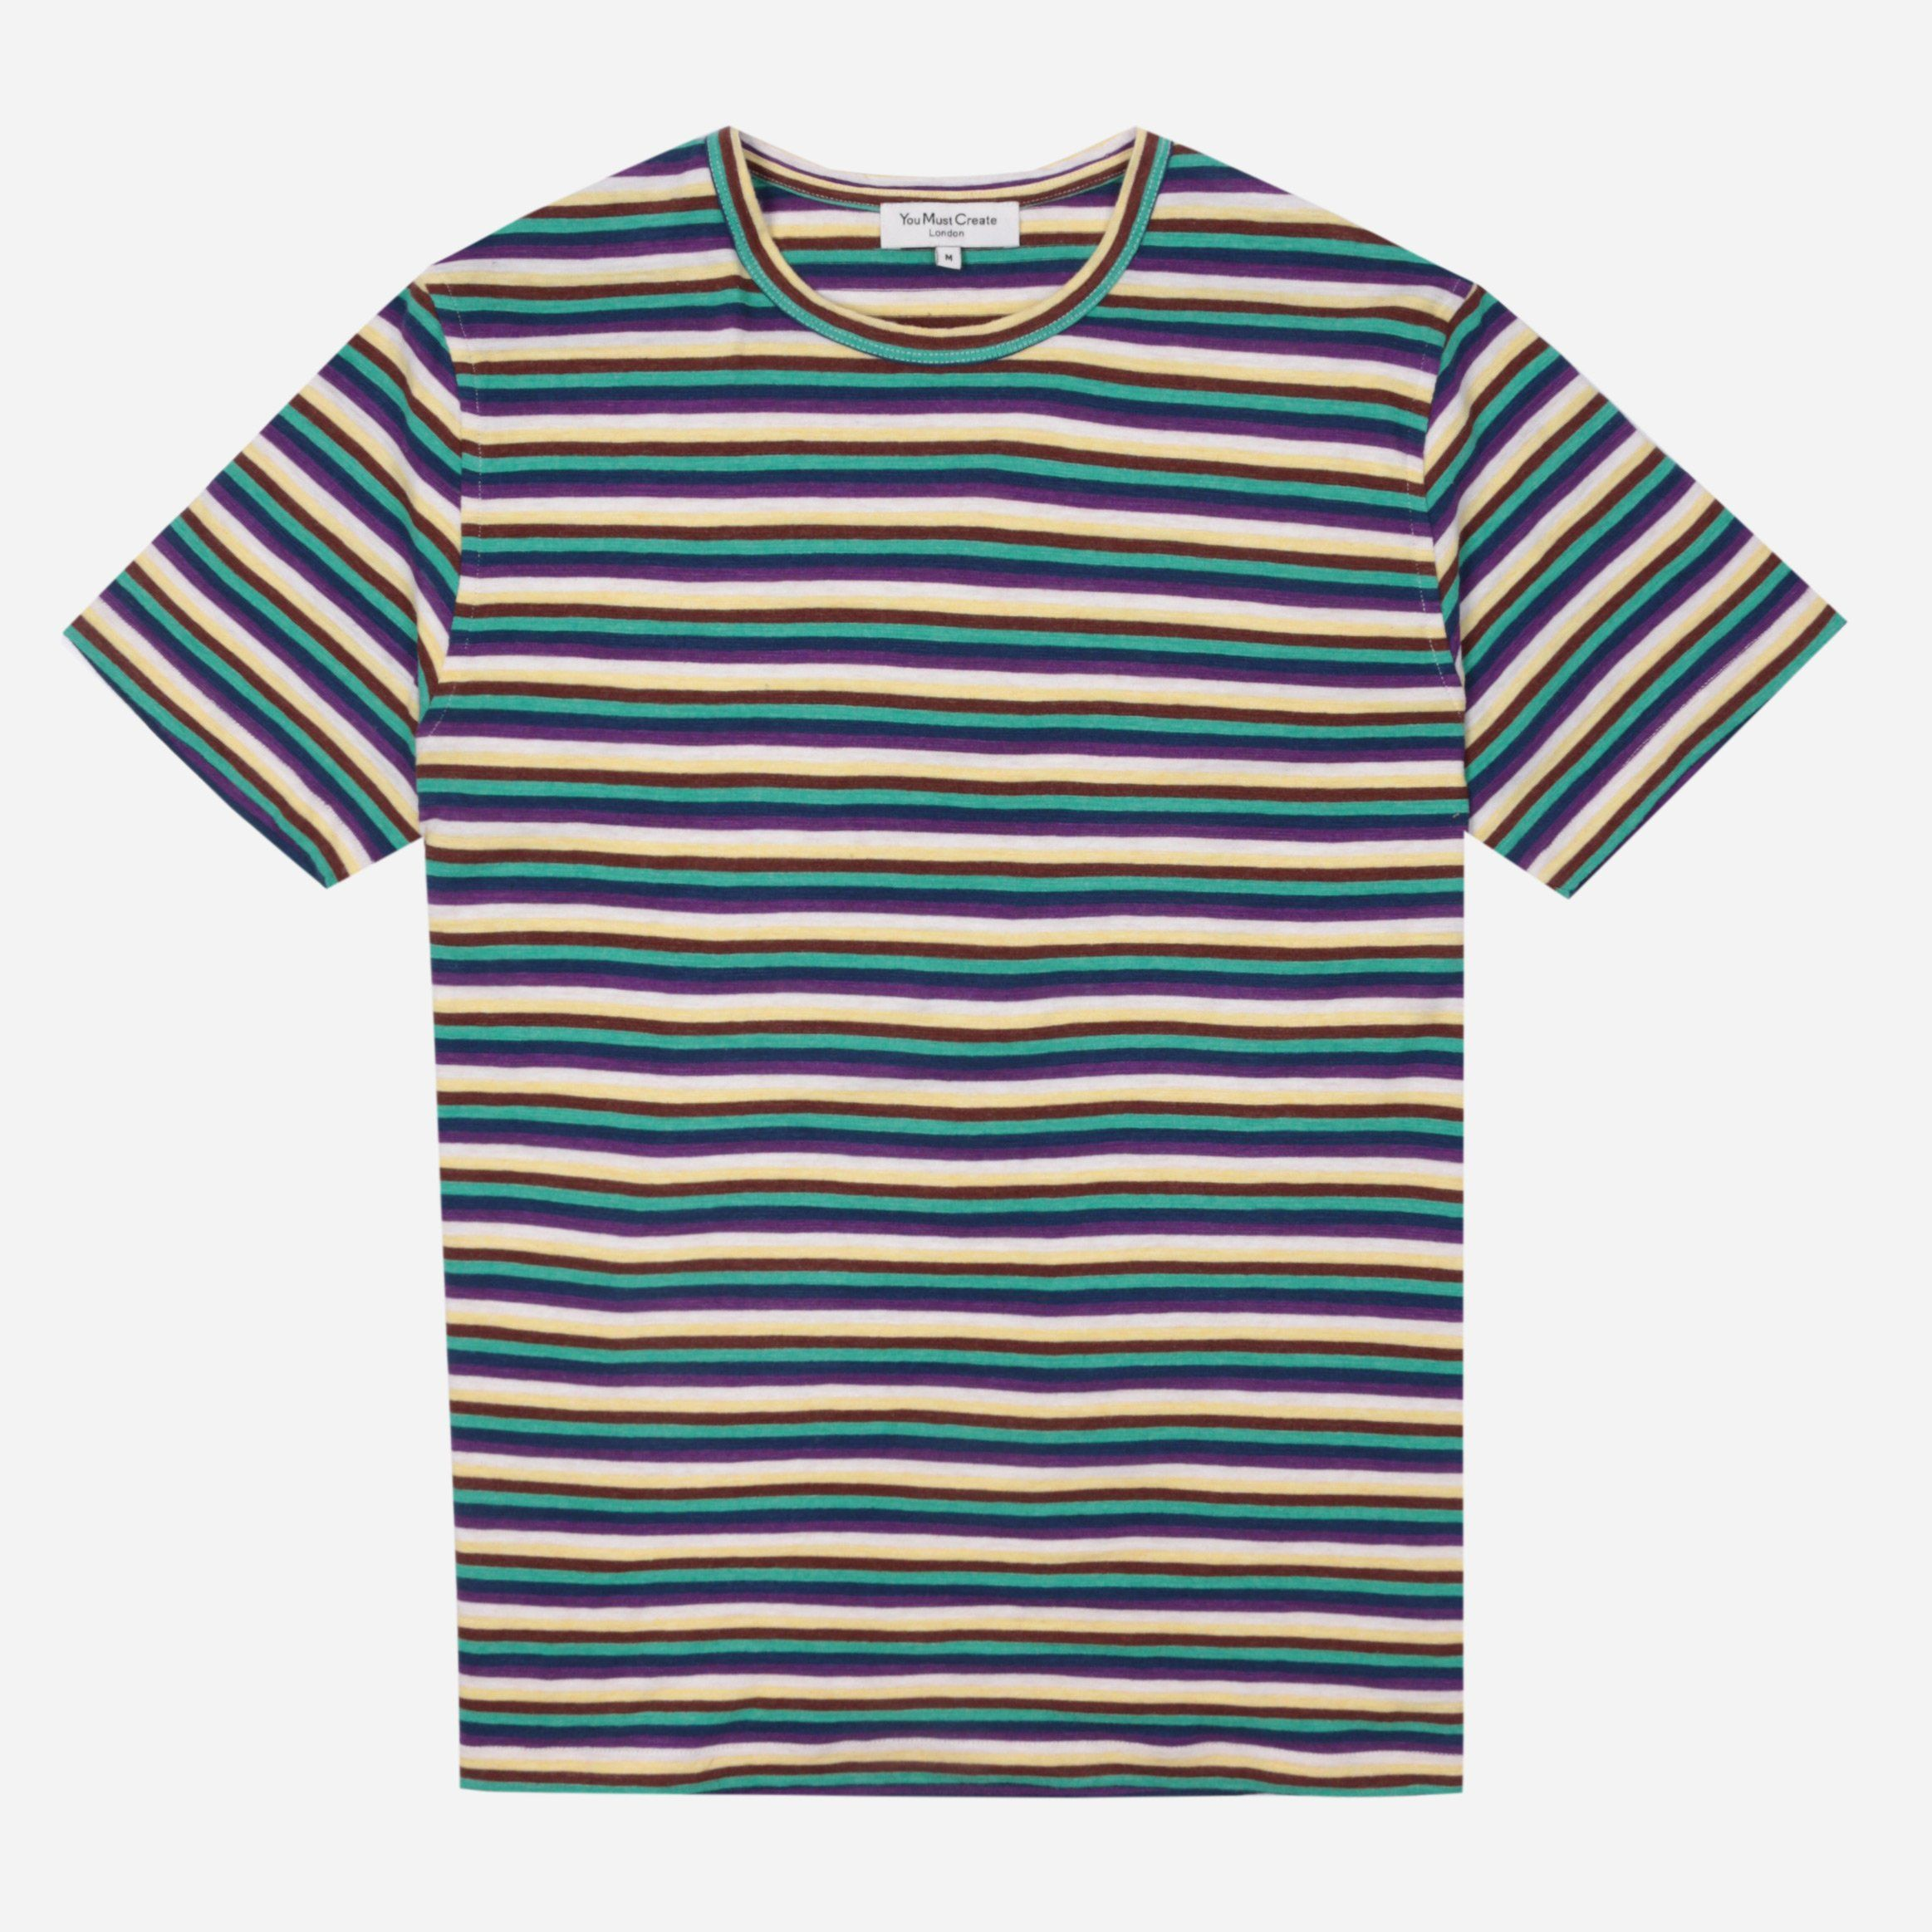 YMC Wild Ones Stripe T-Shirt